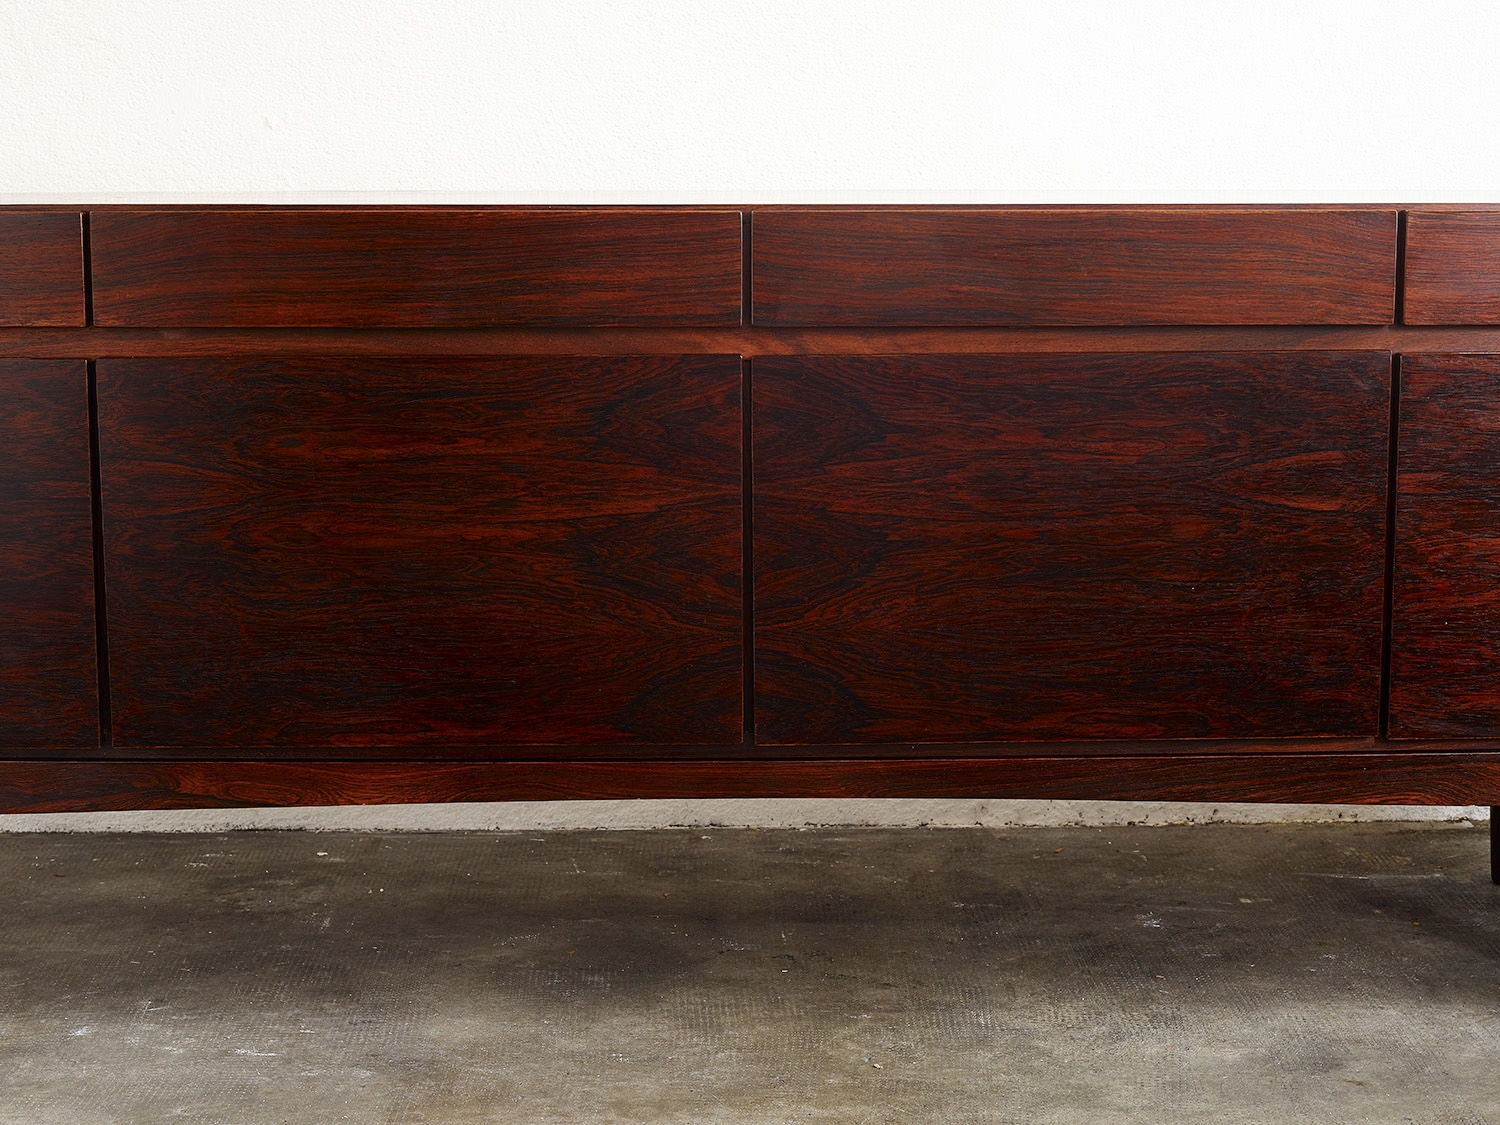 sideboard-fa66-by-ib-kofod-larsen-for-faarup-1960-image-01